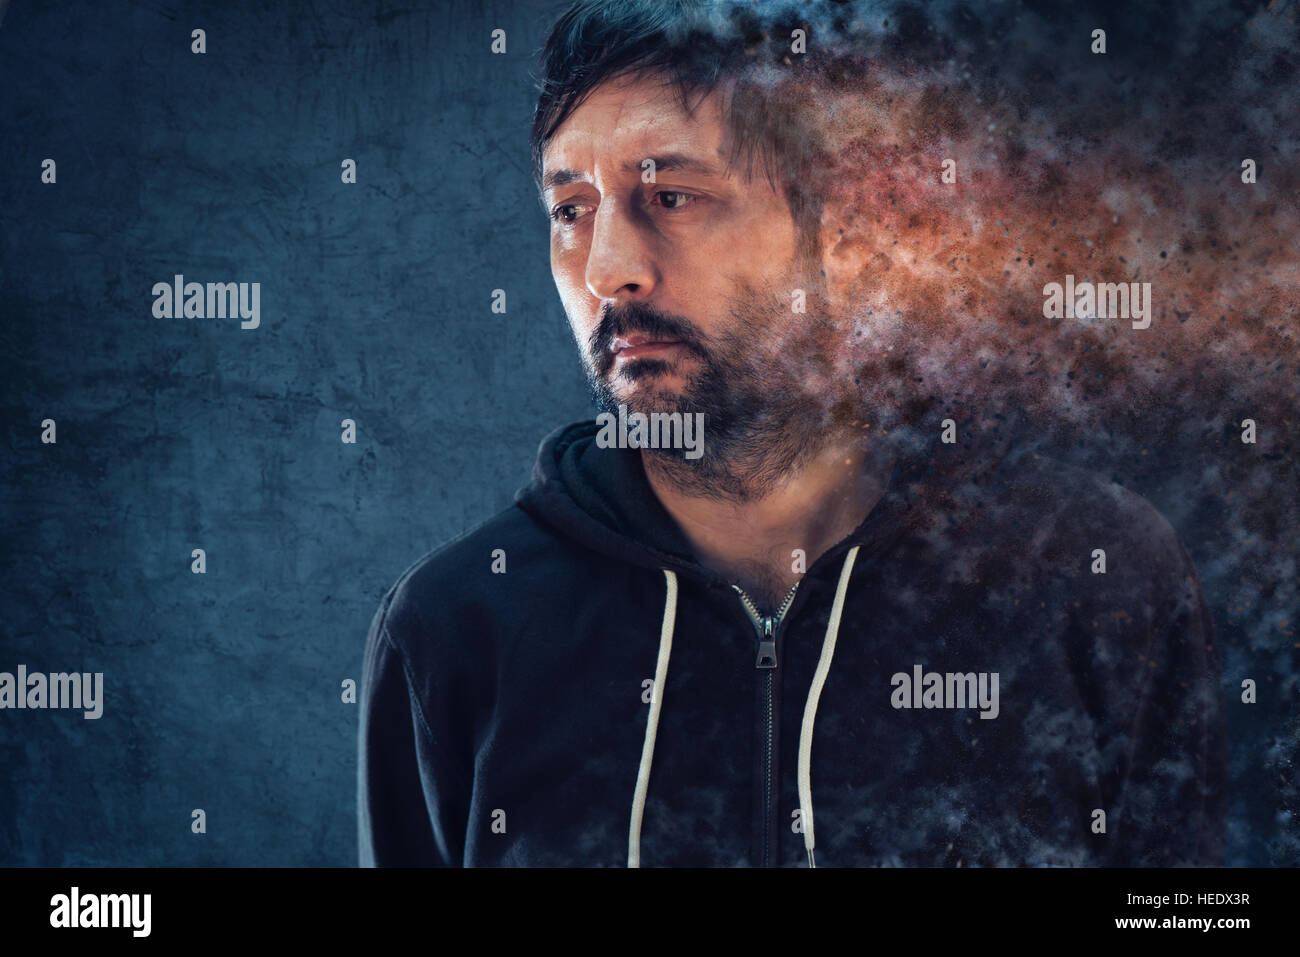 Mental health concept with depressive man dissolving into pieces - Stock Image